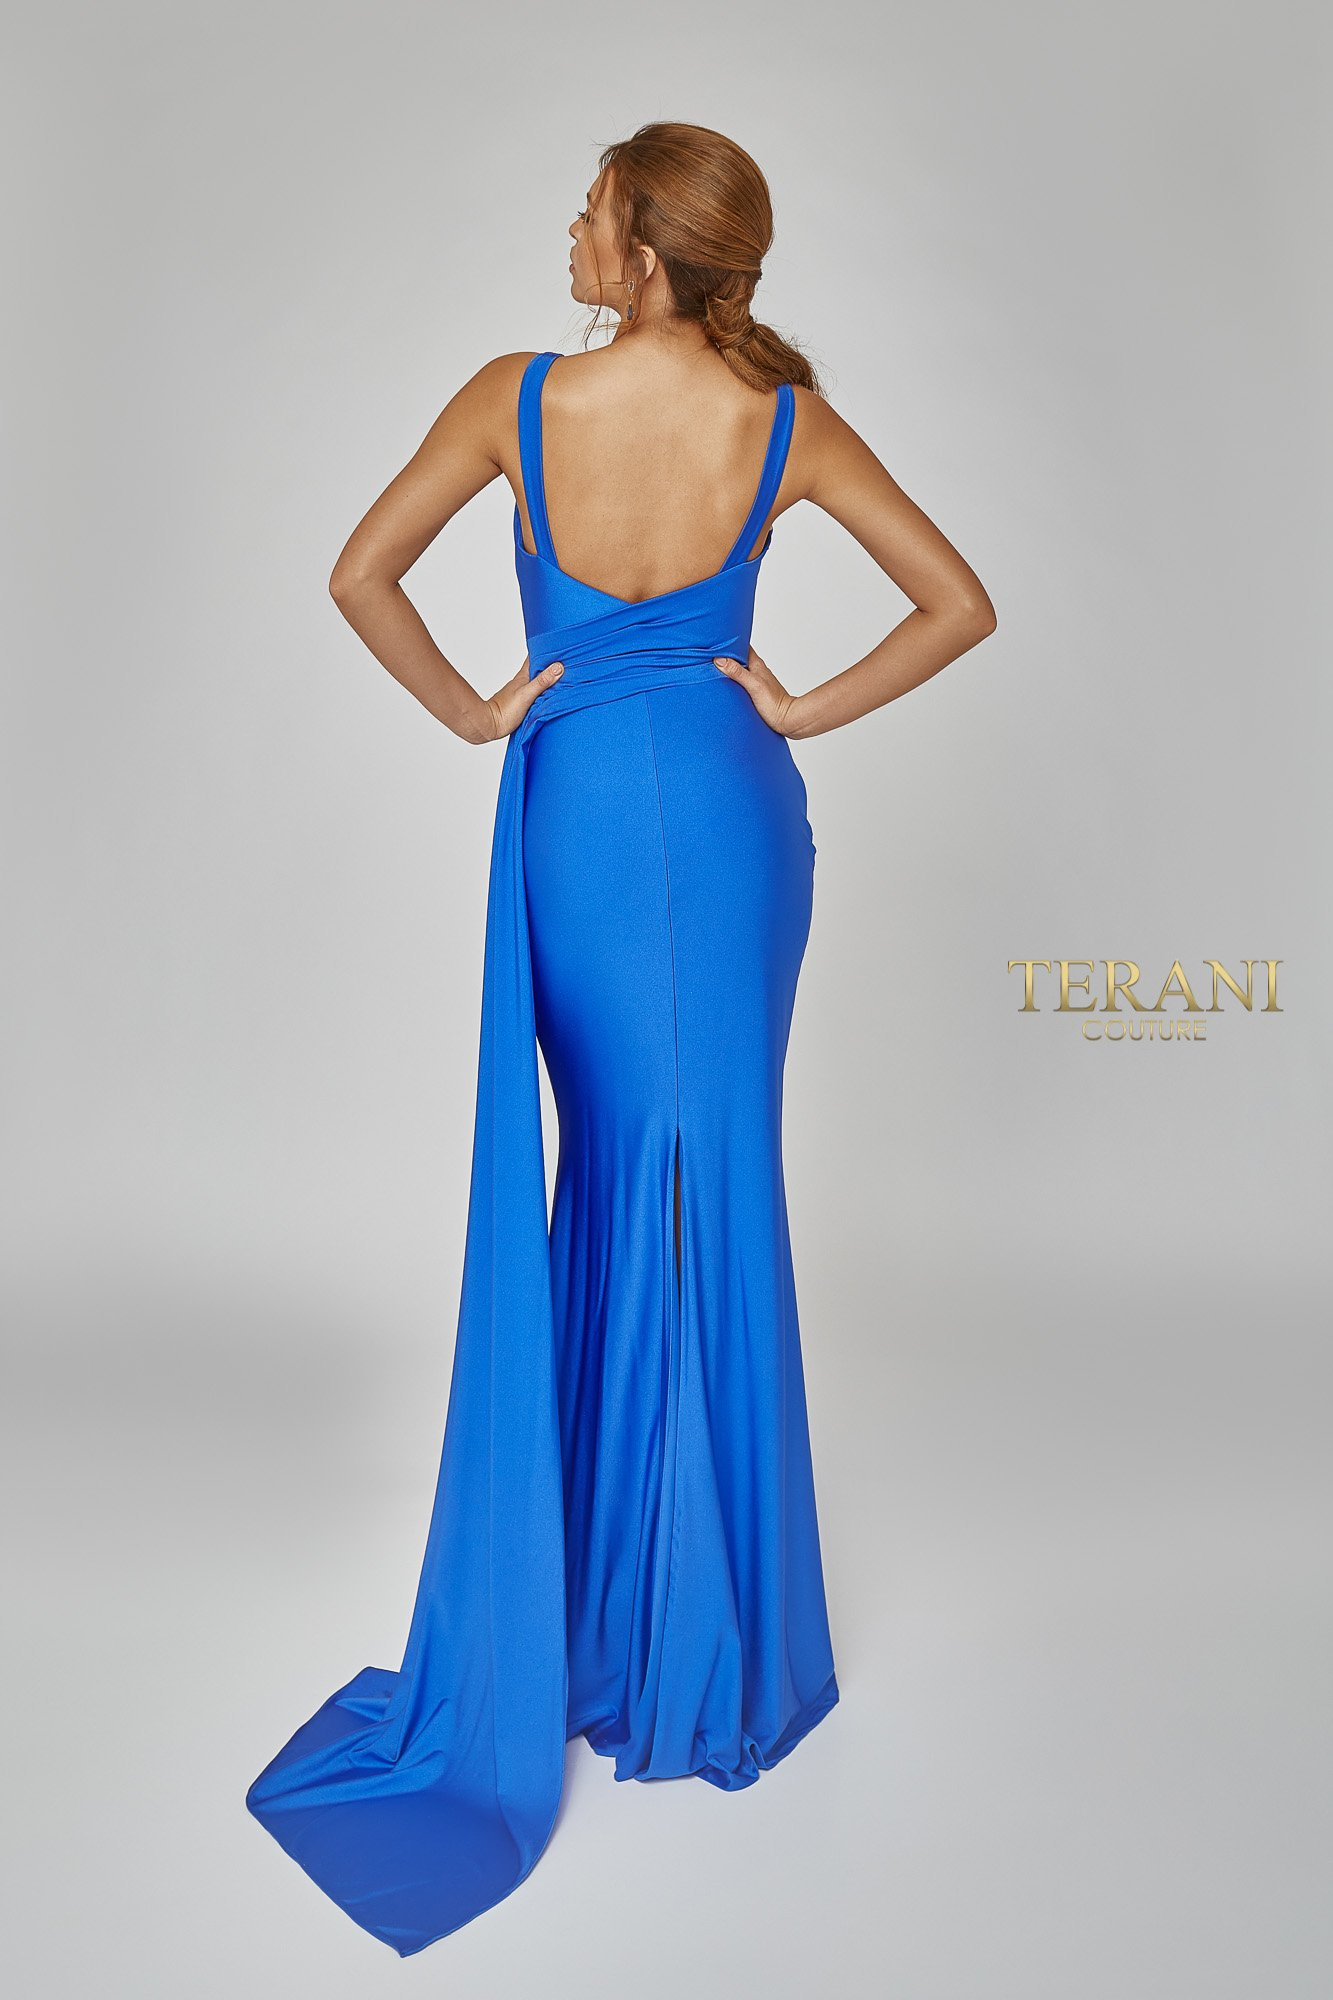 Back dress image for style number 1921E0120